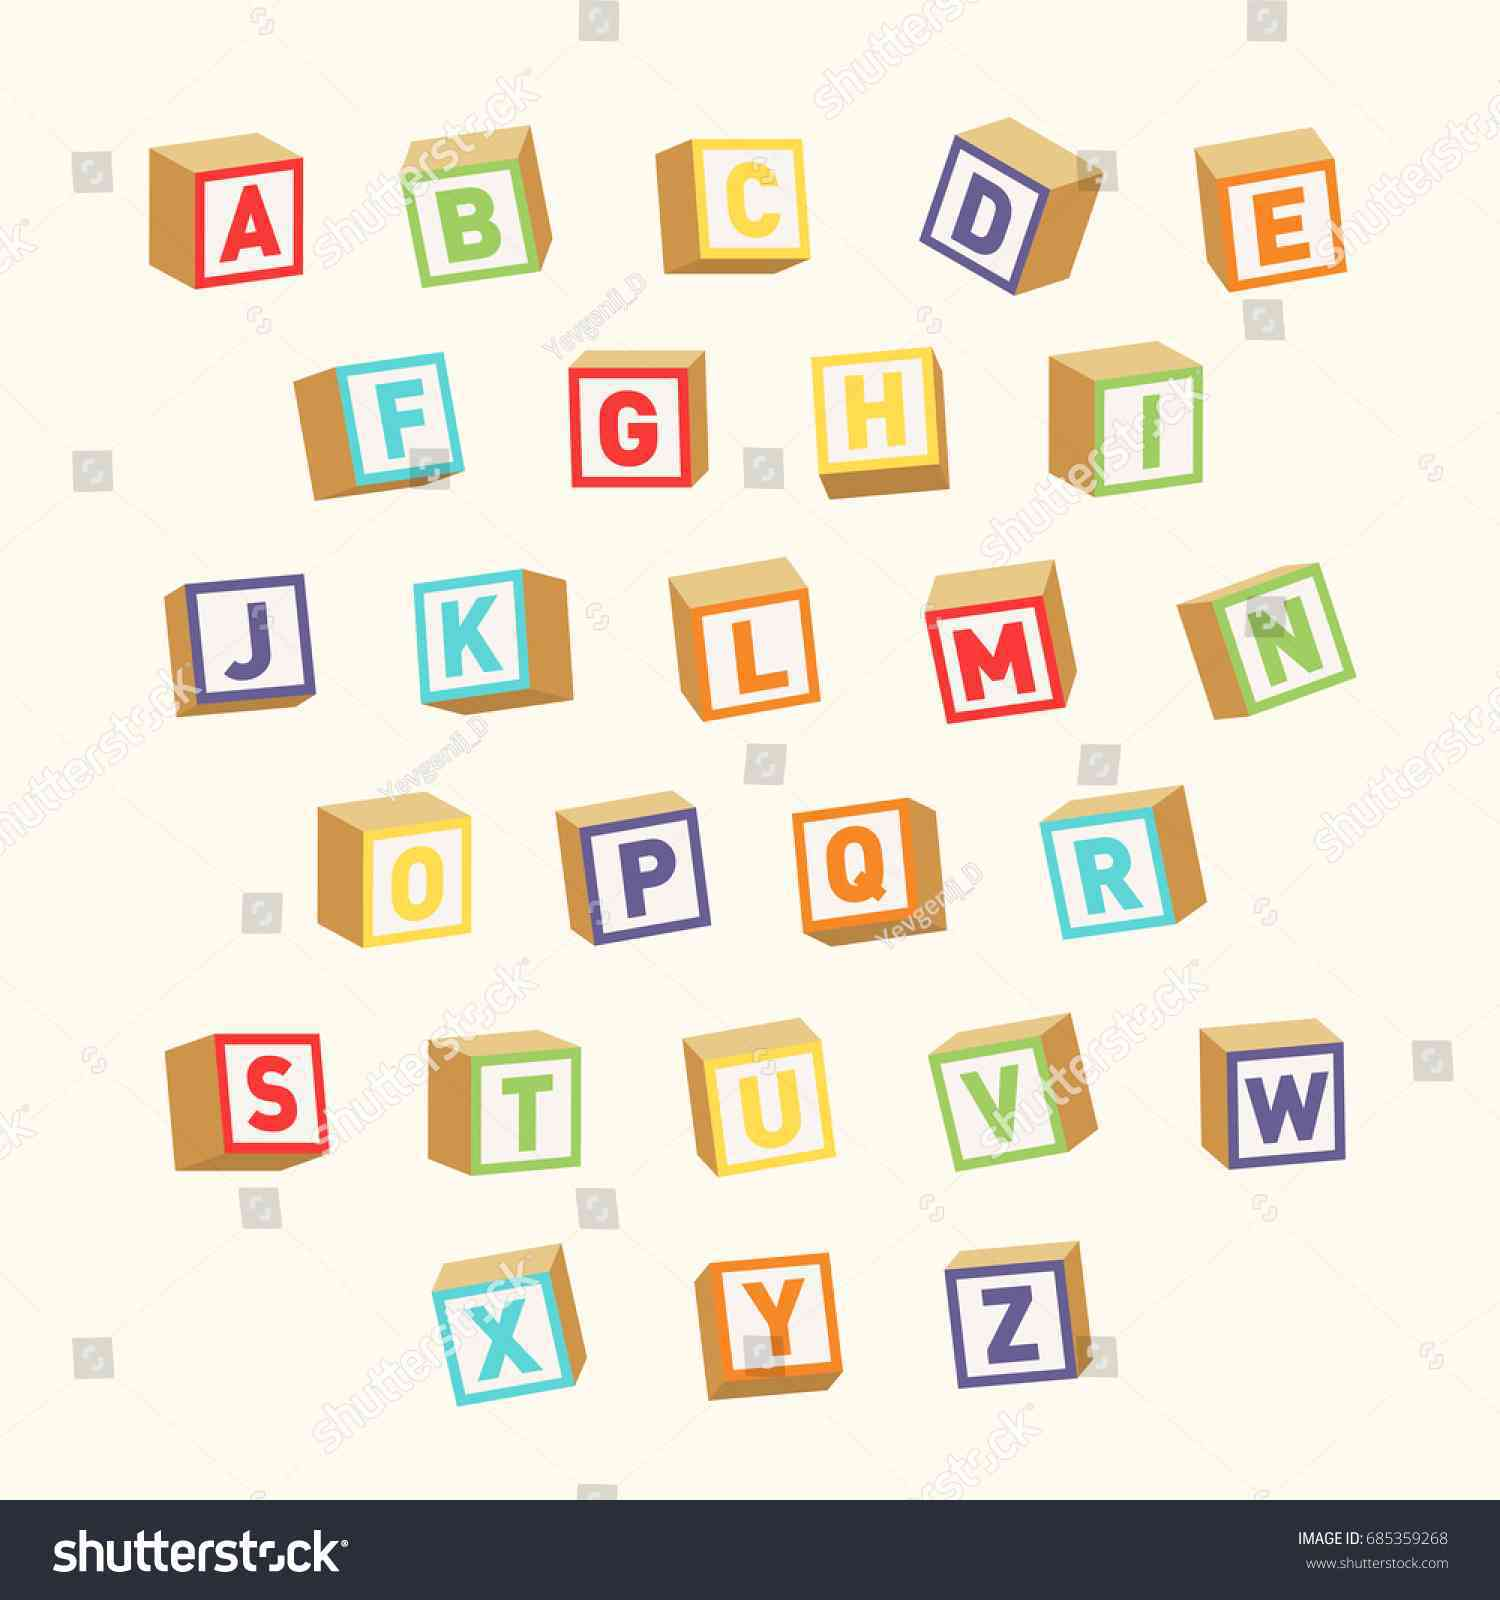 1500x1600 Square Block Letter Font Awesome Alphabet Colorful Toy Blocks